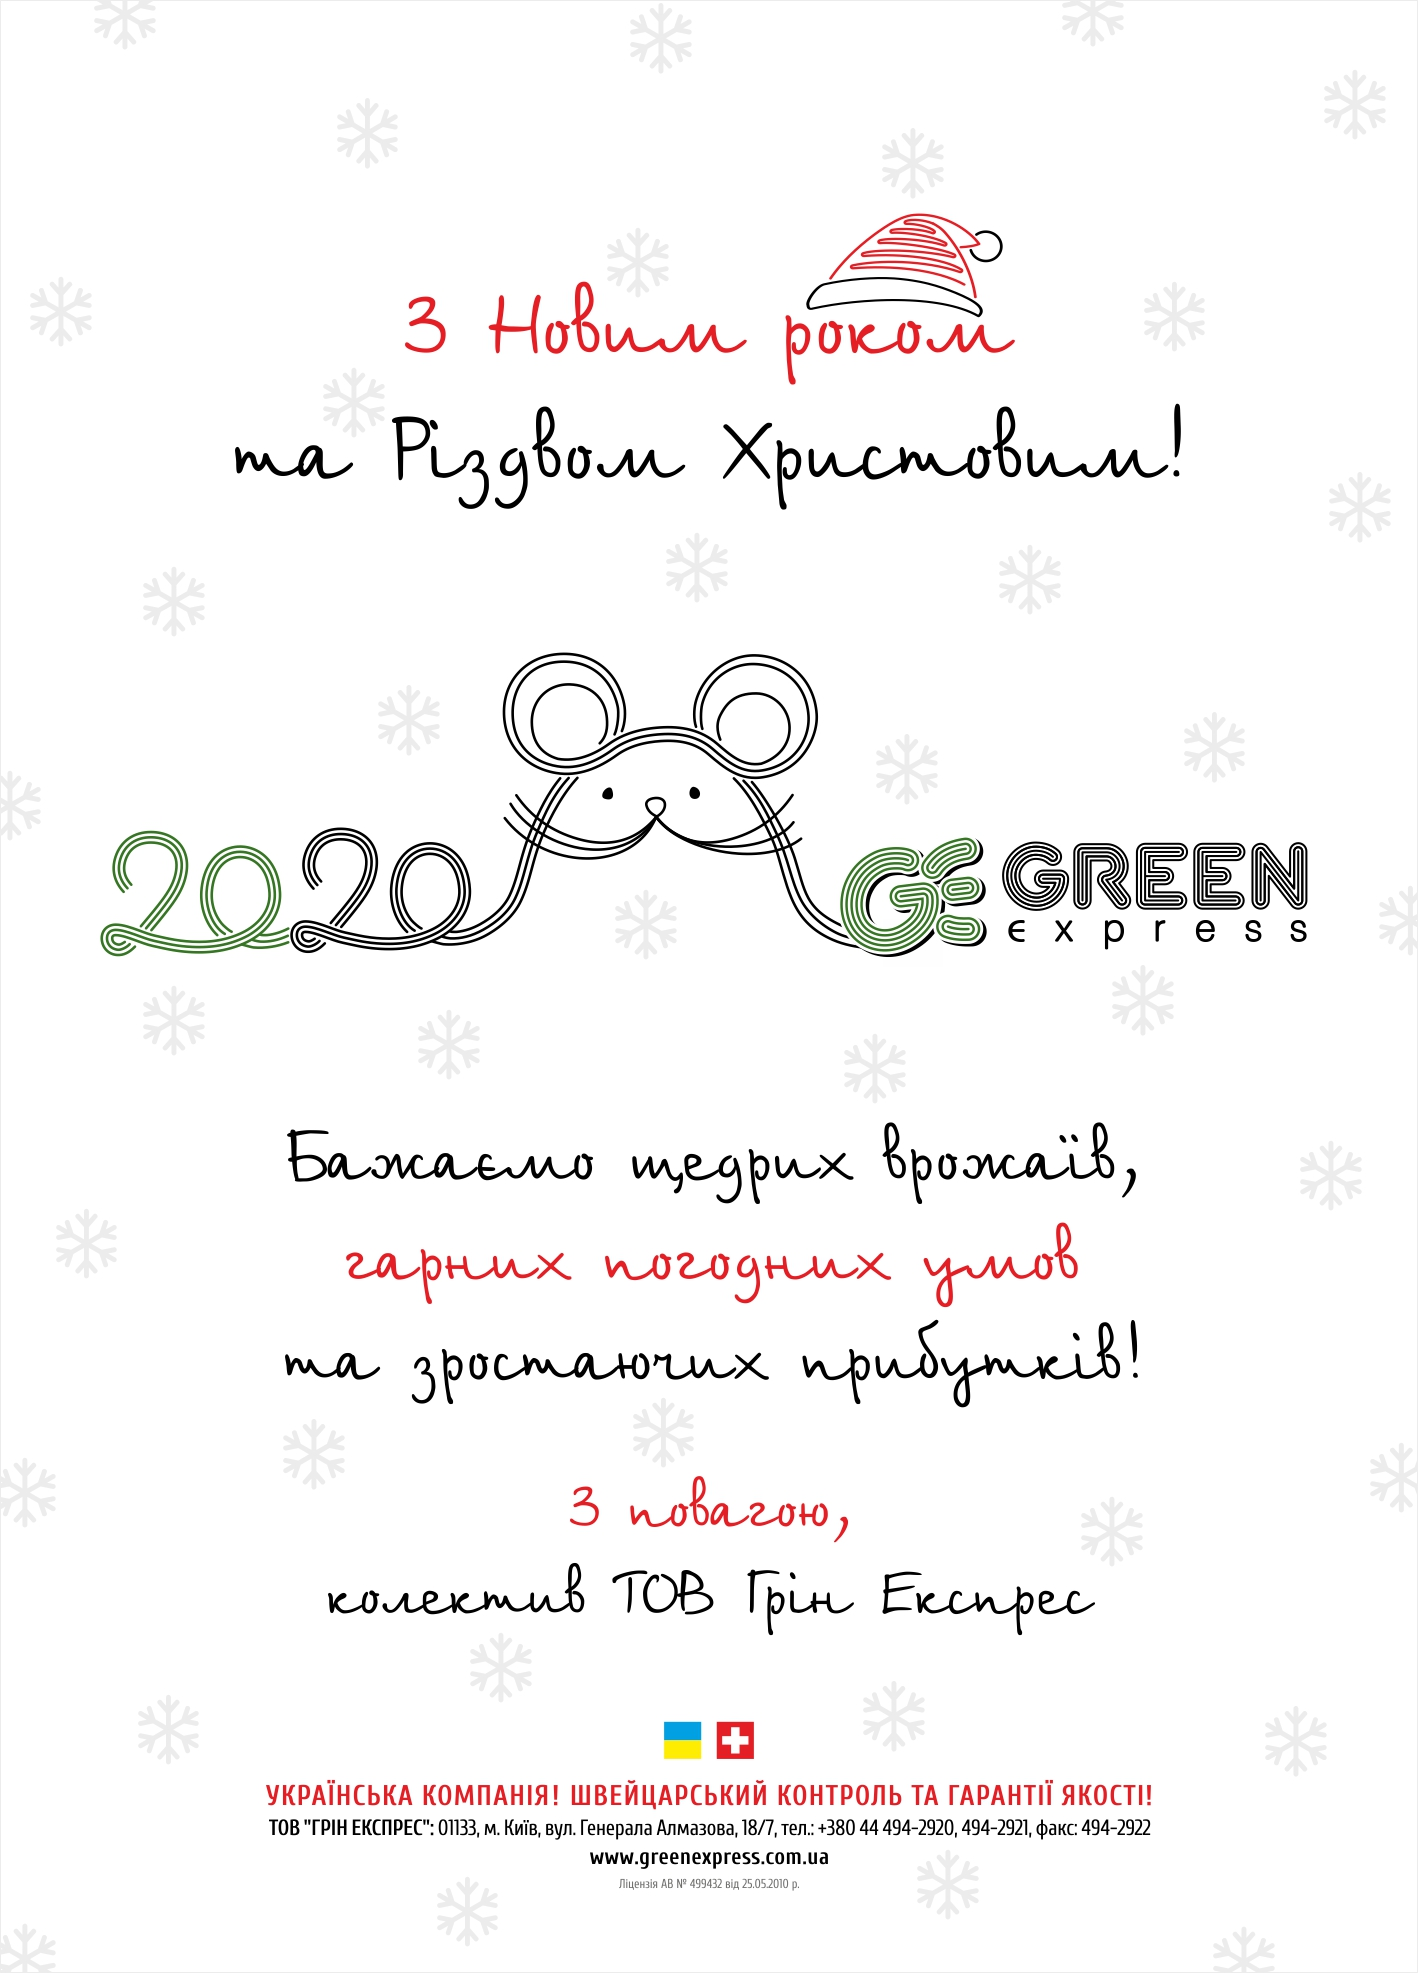 New Year and Christmas congratulations from Green Express!